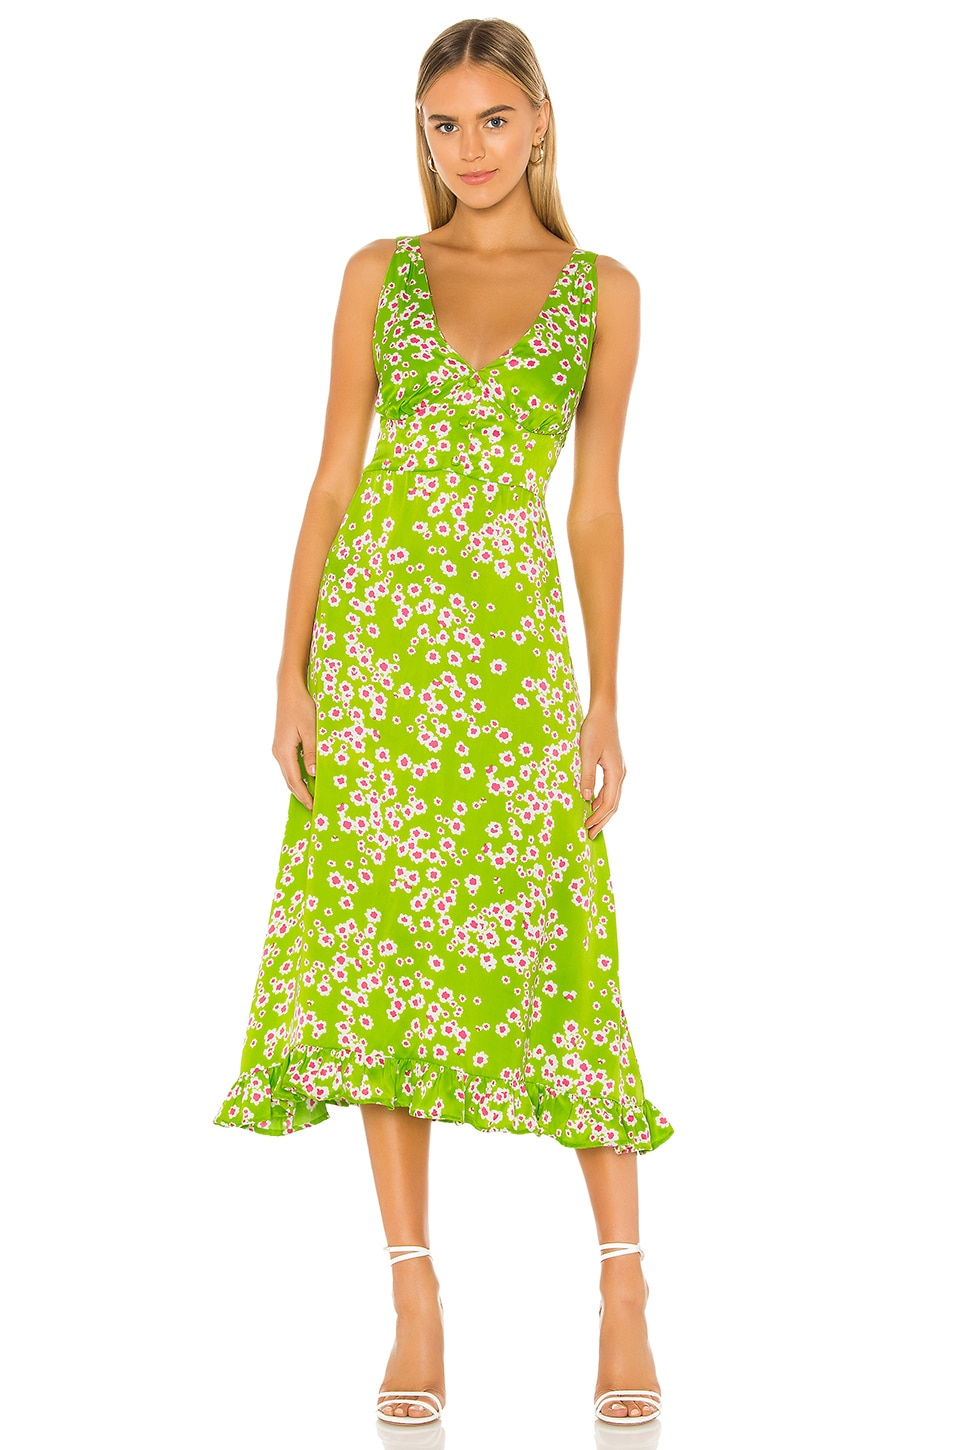 FAITHFULL THE BRAND Emili Sun Dress in Le Bon Floral & Apple Green